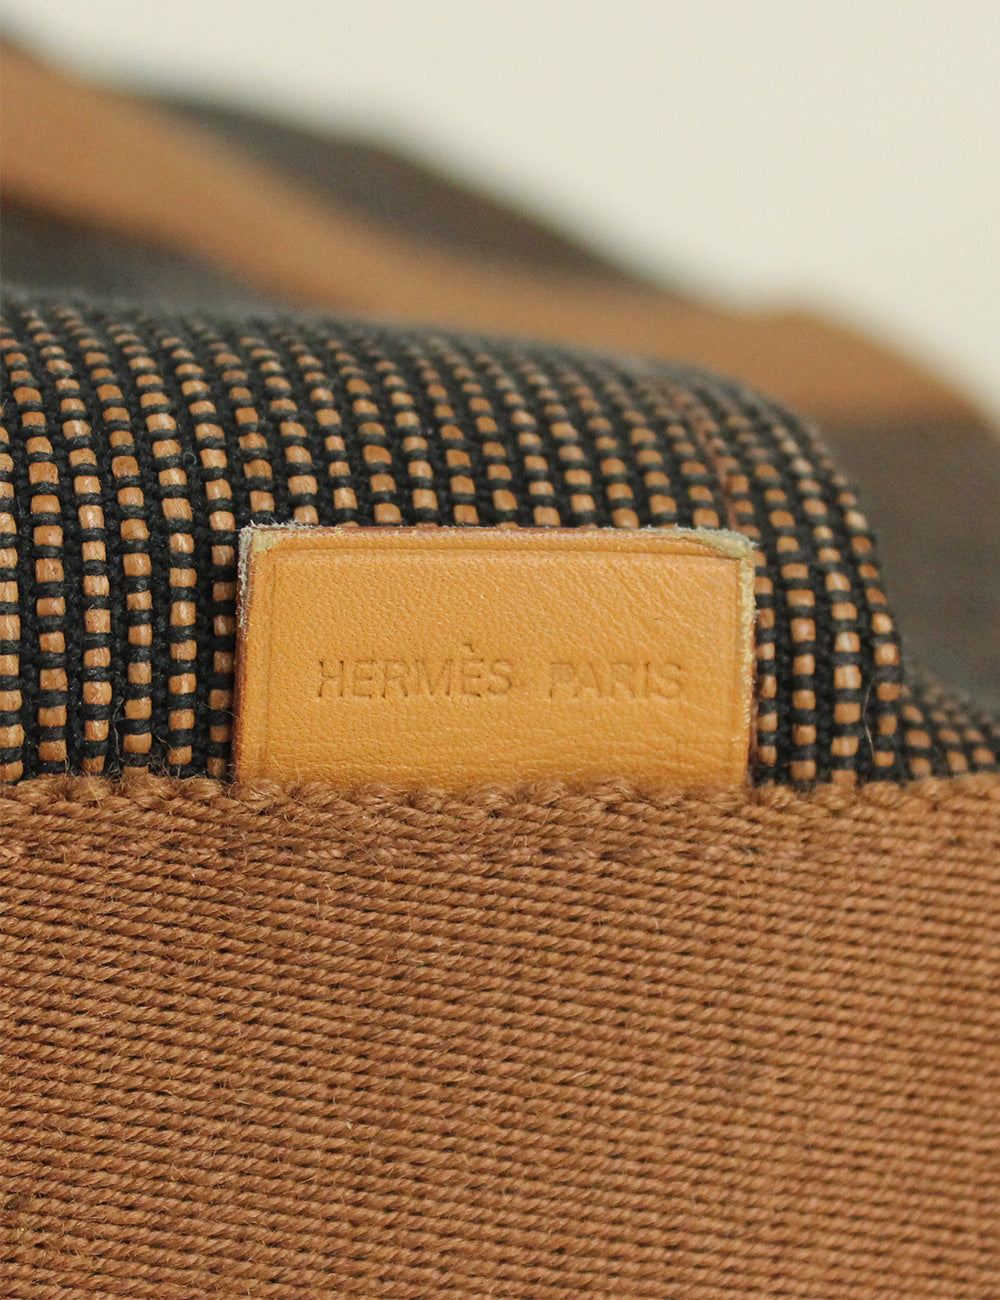 Hermes <br> Saxo MM Canvas Bag